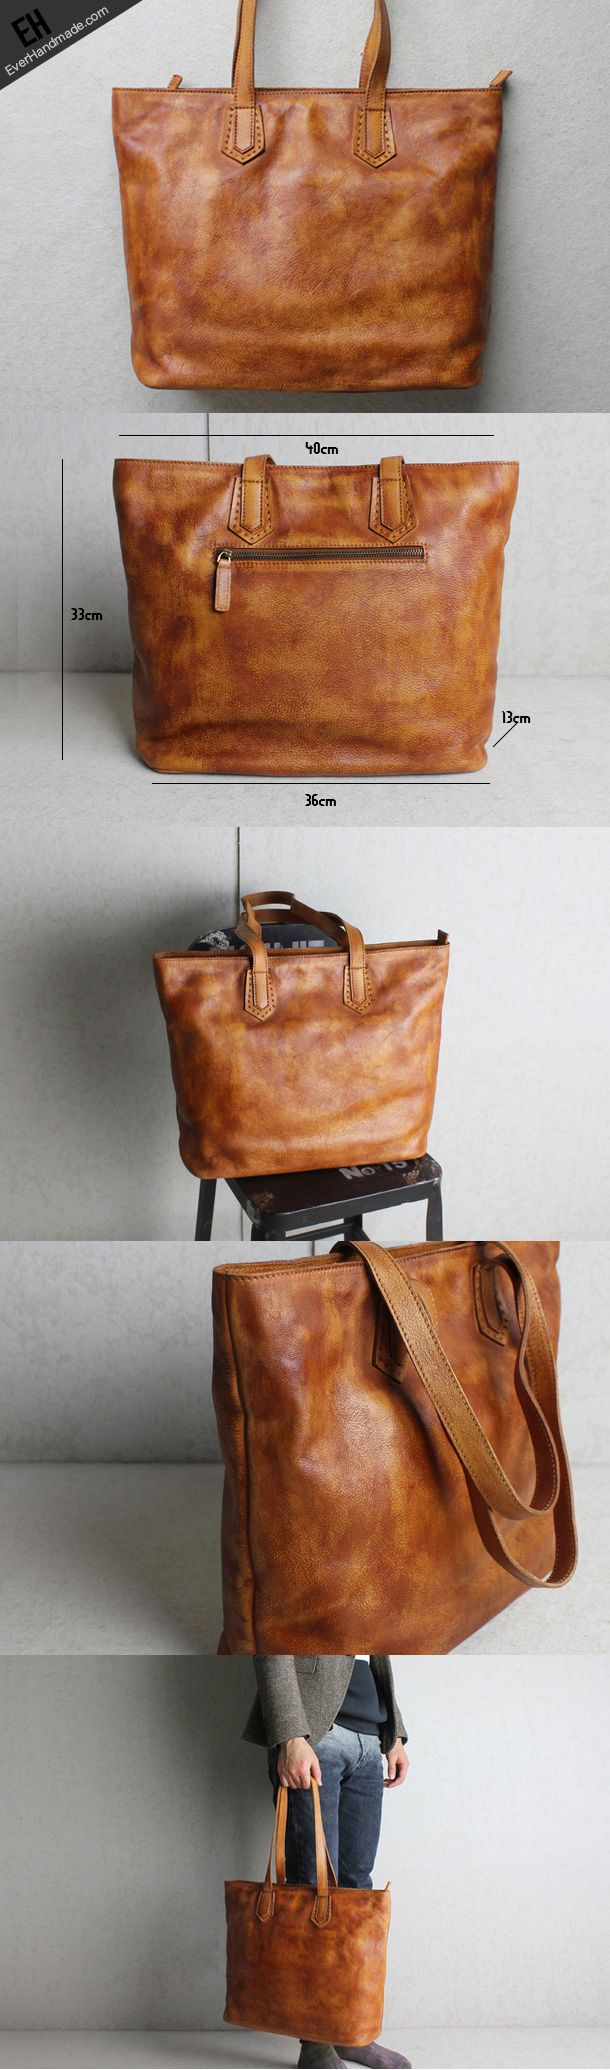 Handmade Brown Leather Tote Bag Large